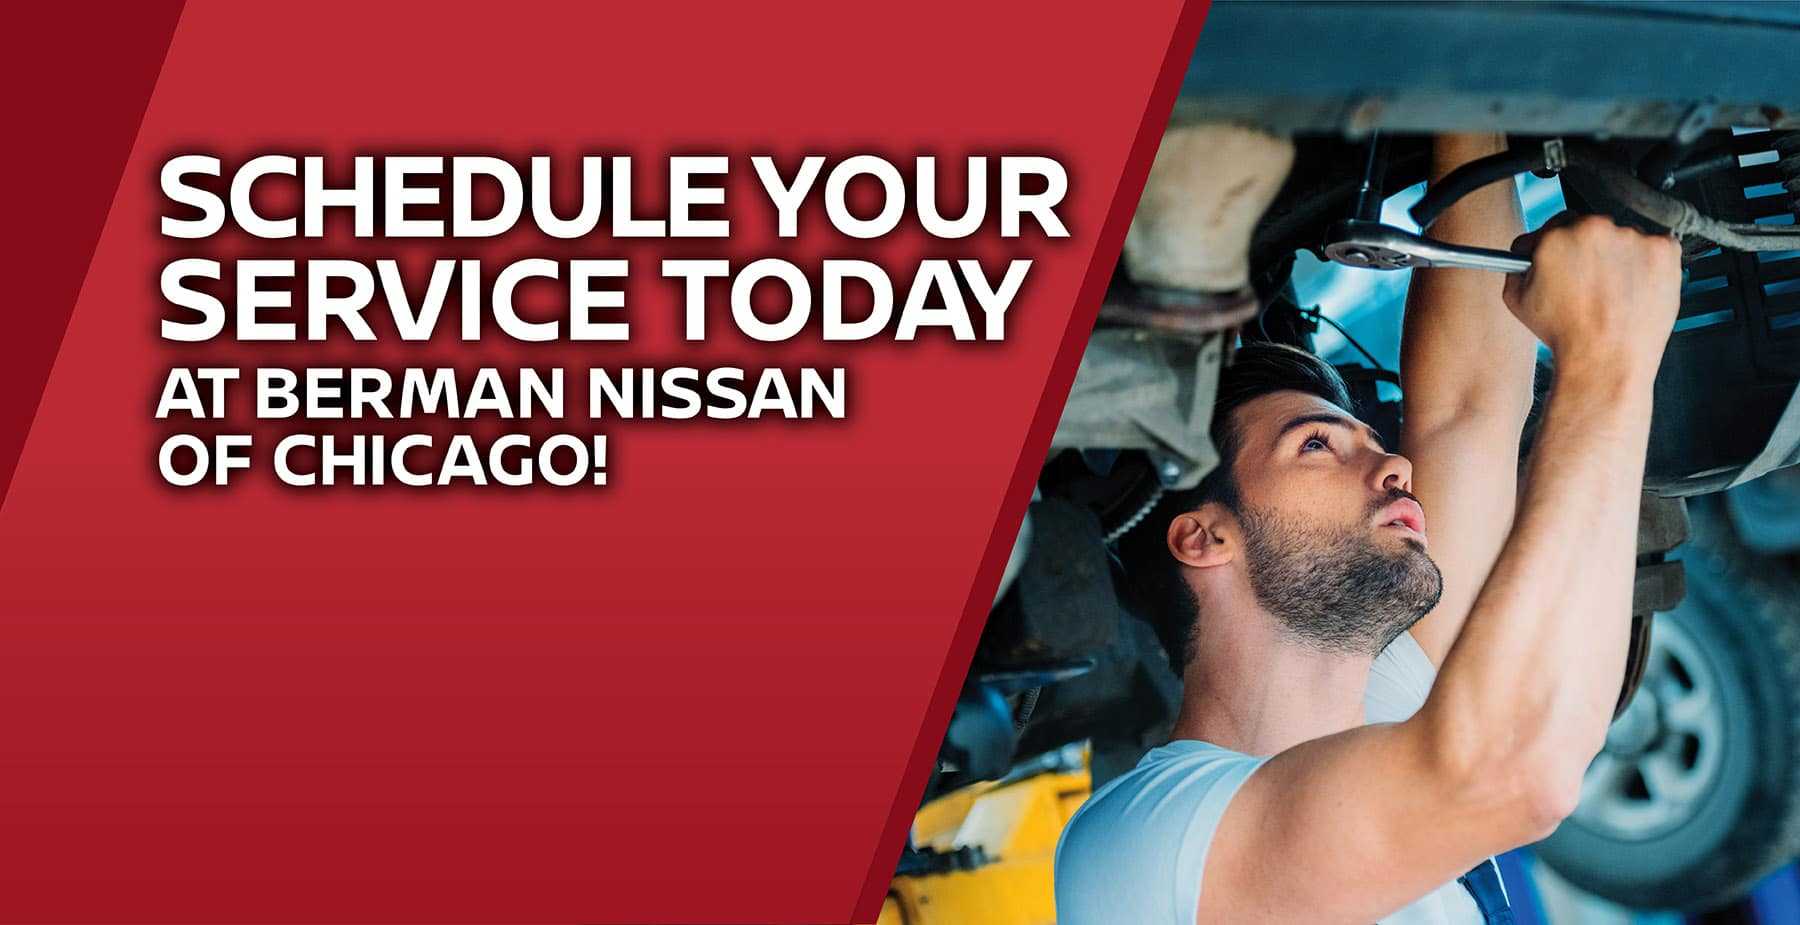 Schedule Your Service Today at Berman Nissan of Chicago!